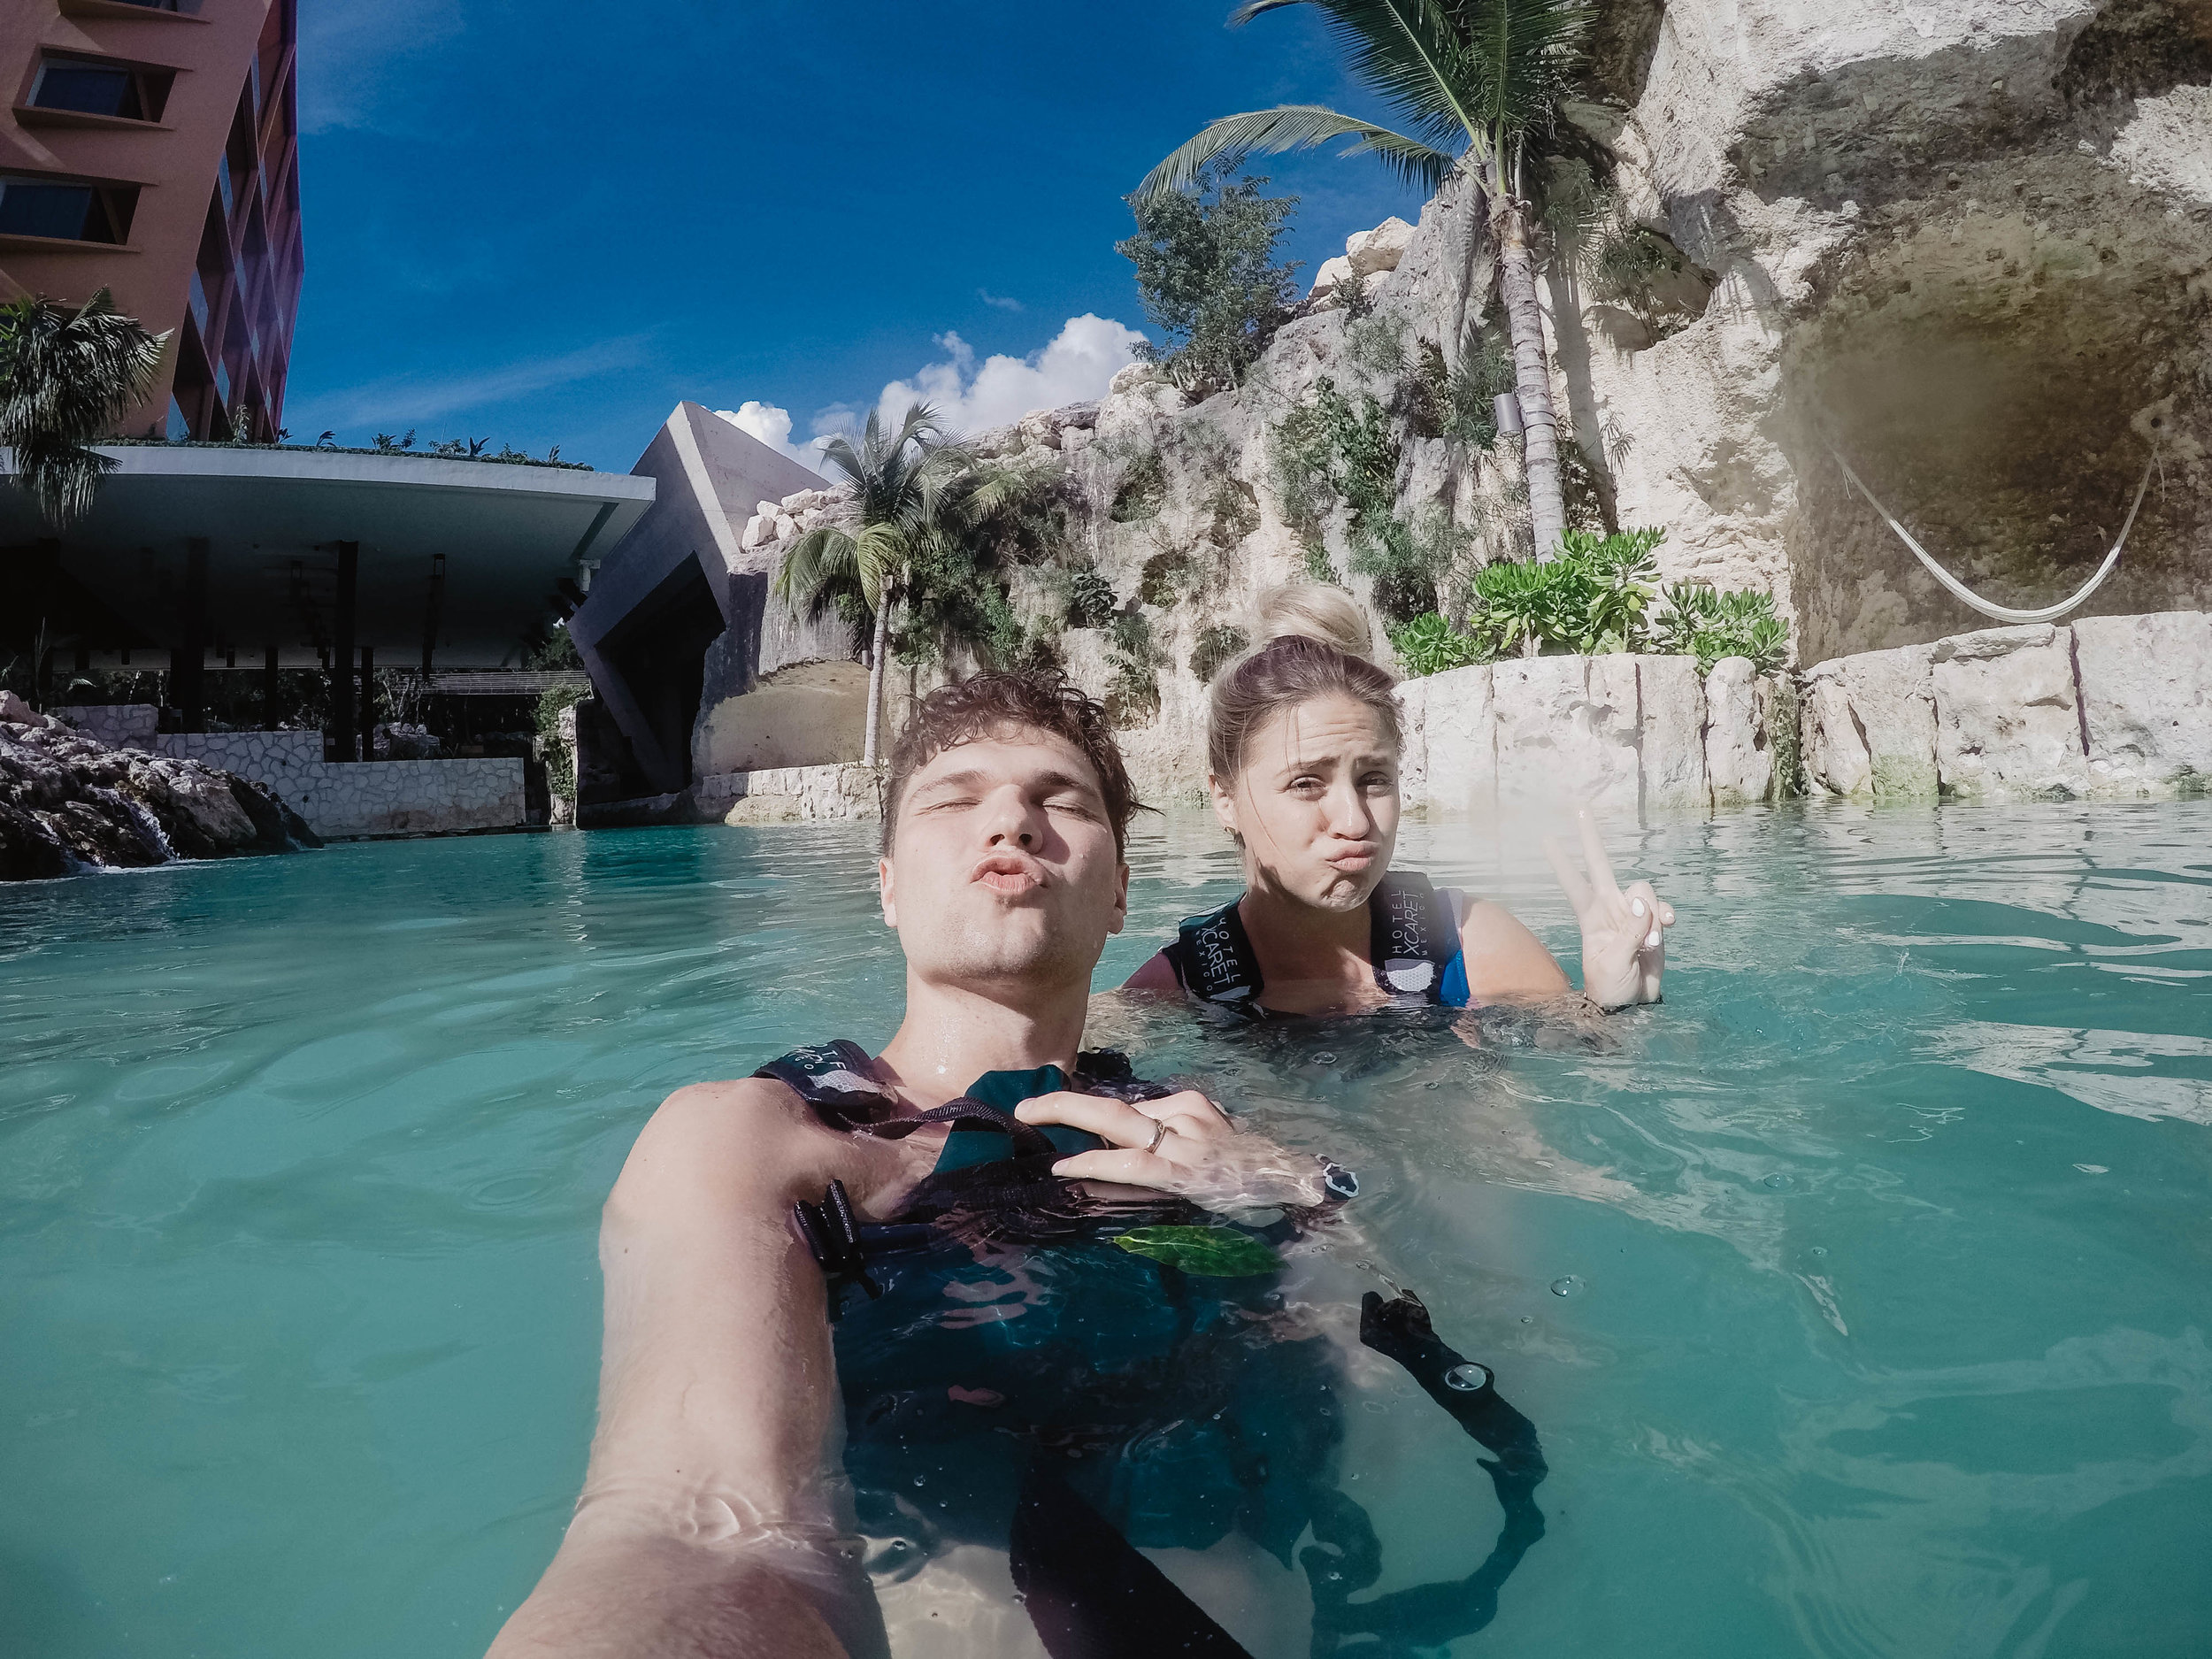 Posing for a ducklips photo in the lazy river at Hotel Xcaret Mexico